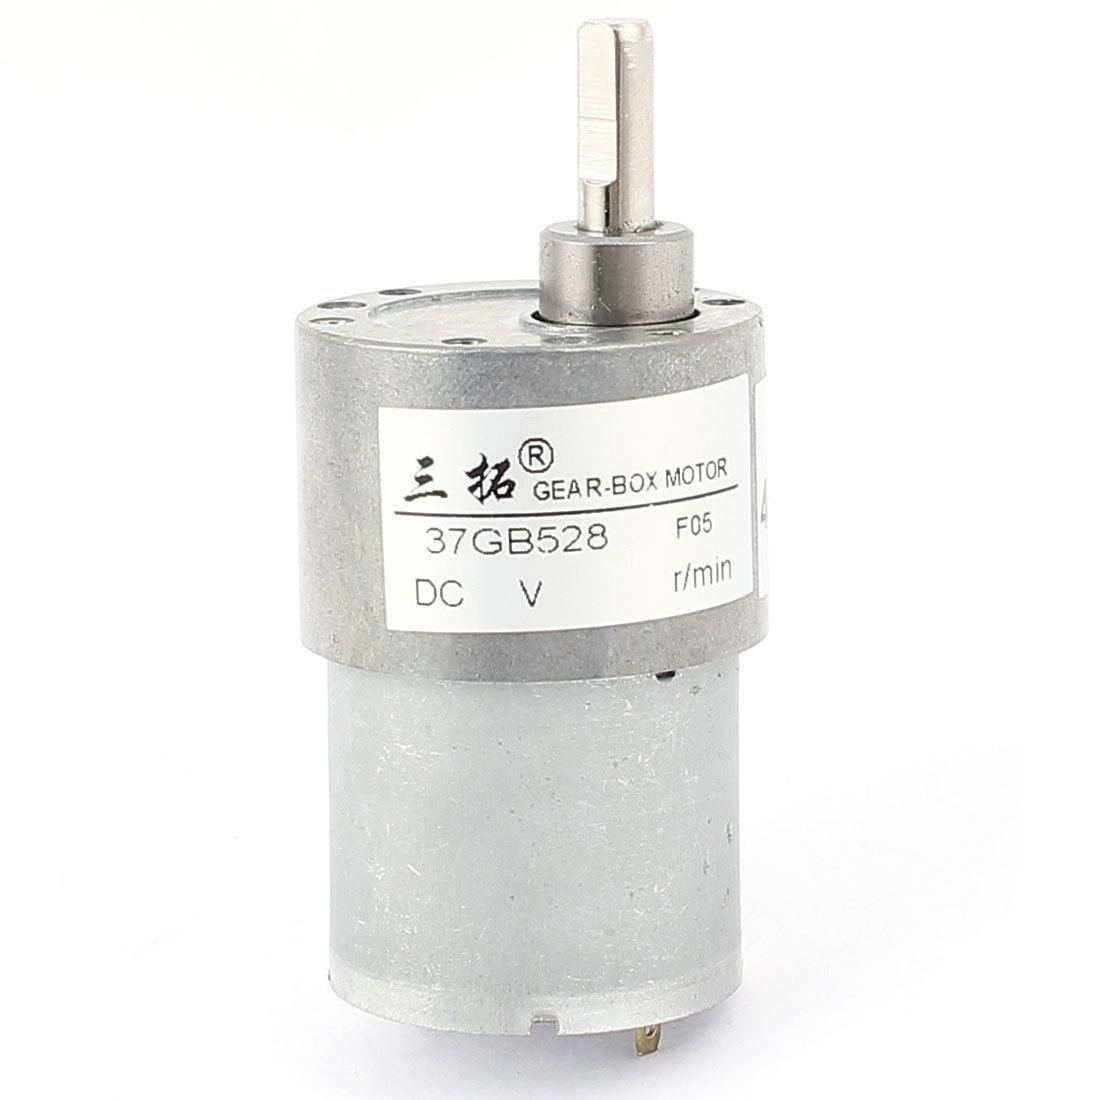 DC 12V 5.5RPM 0.2A 12KG.CM High Torque DC Gear Box Reducer Variable Speed Motor